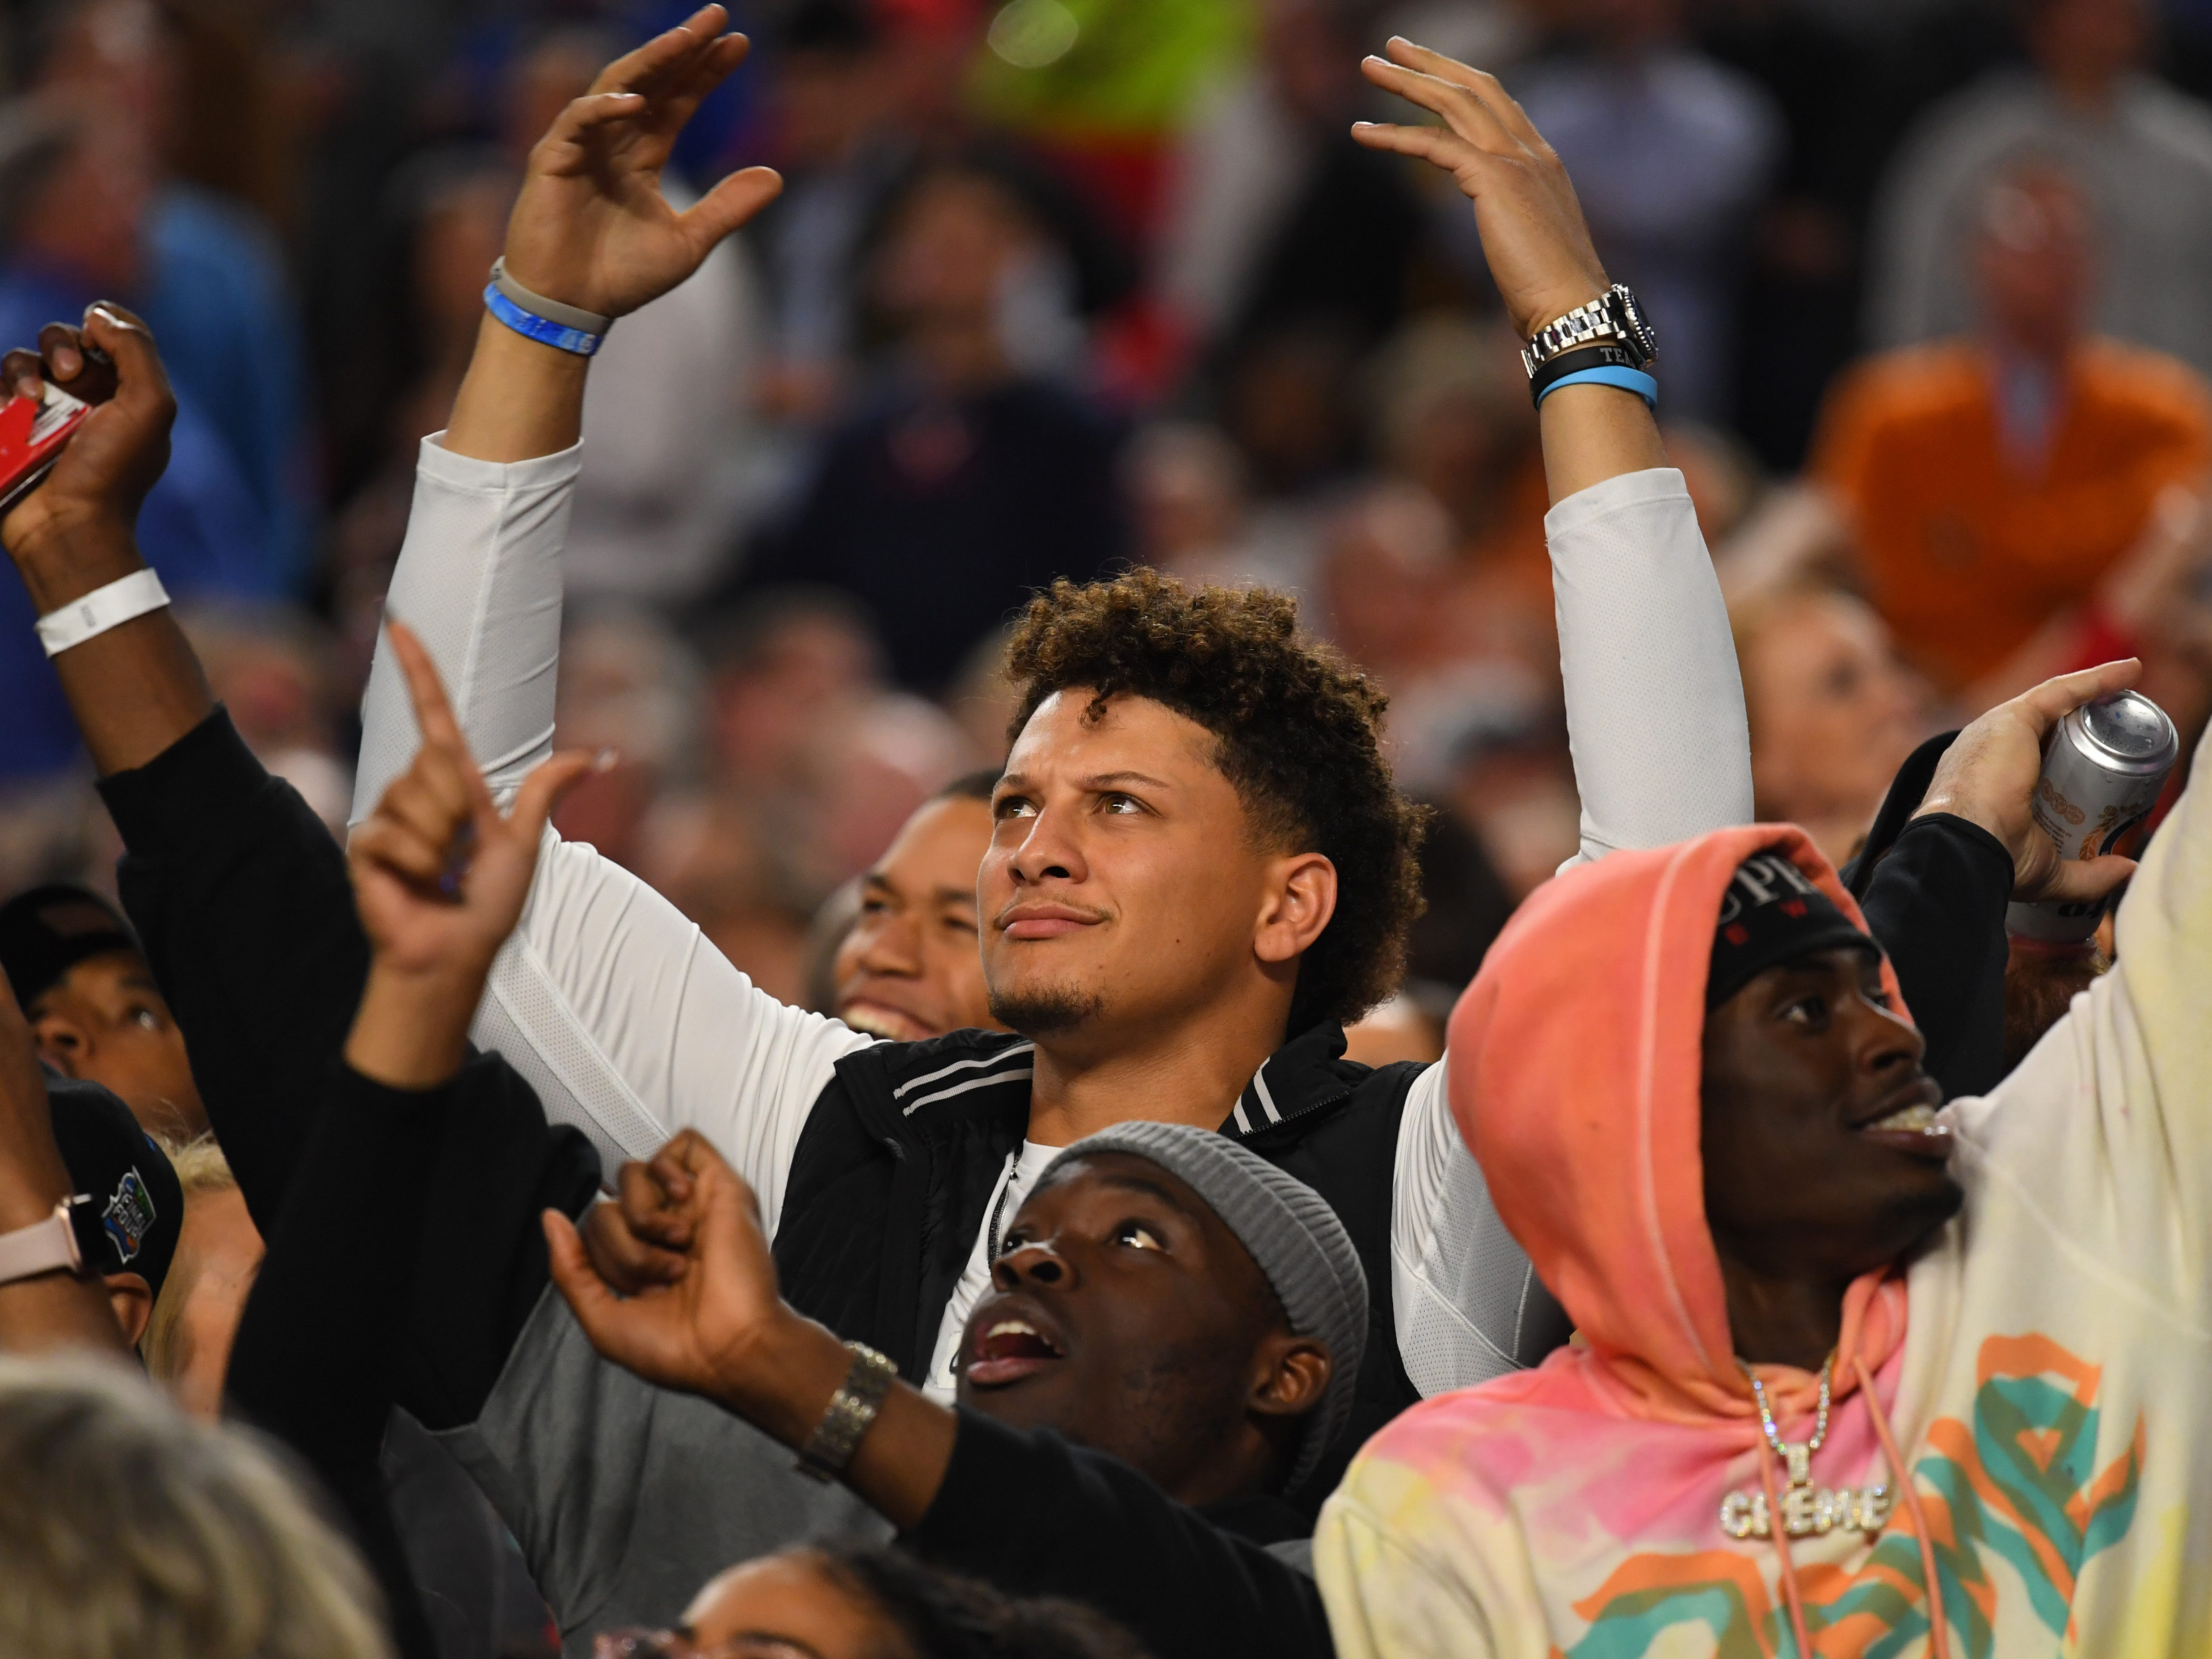 Kansas City Chiefs quarterback and former Texas Tech player Patrick Mahomes cheers in the stands.